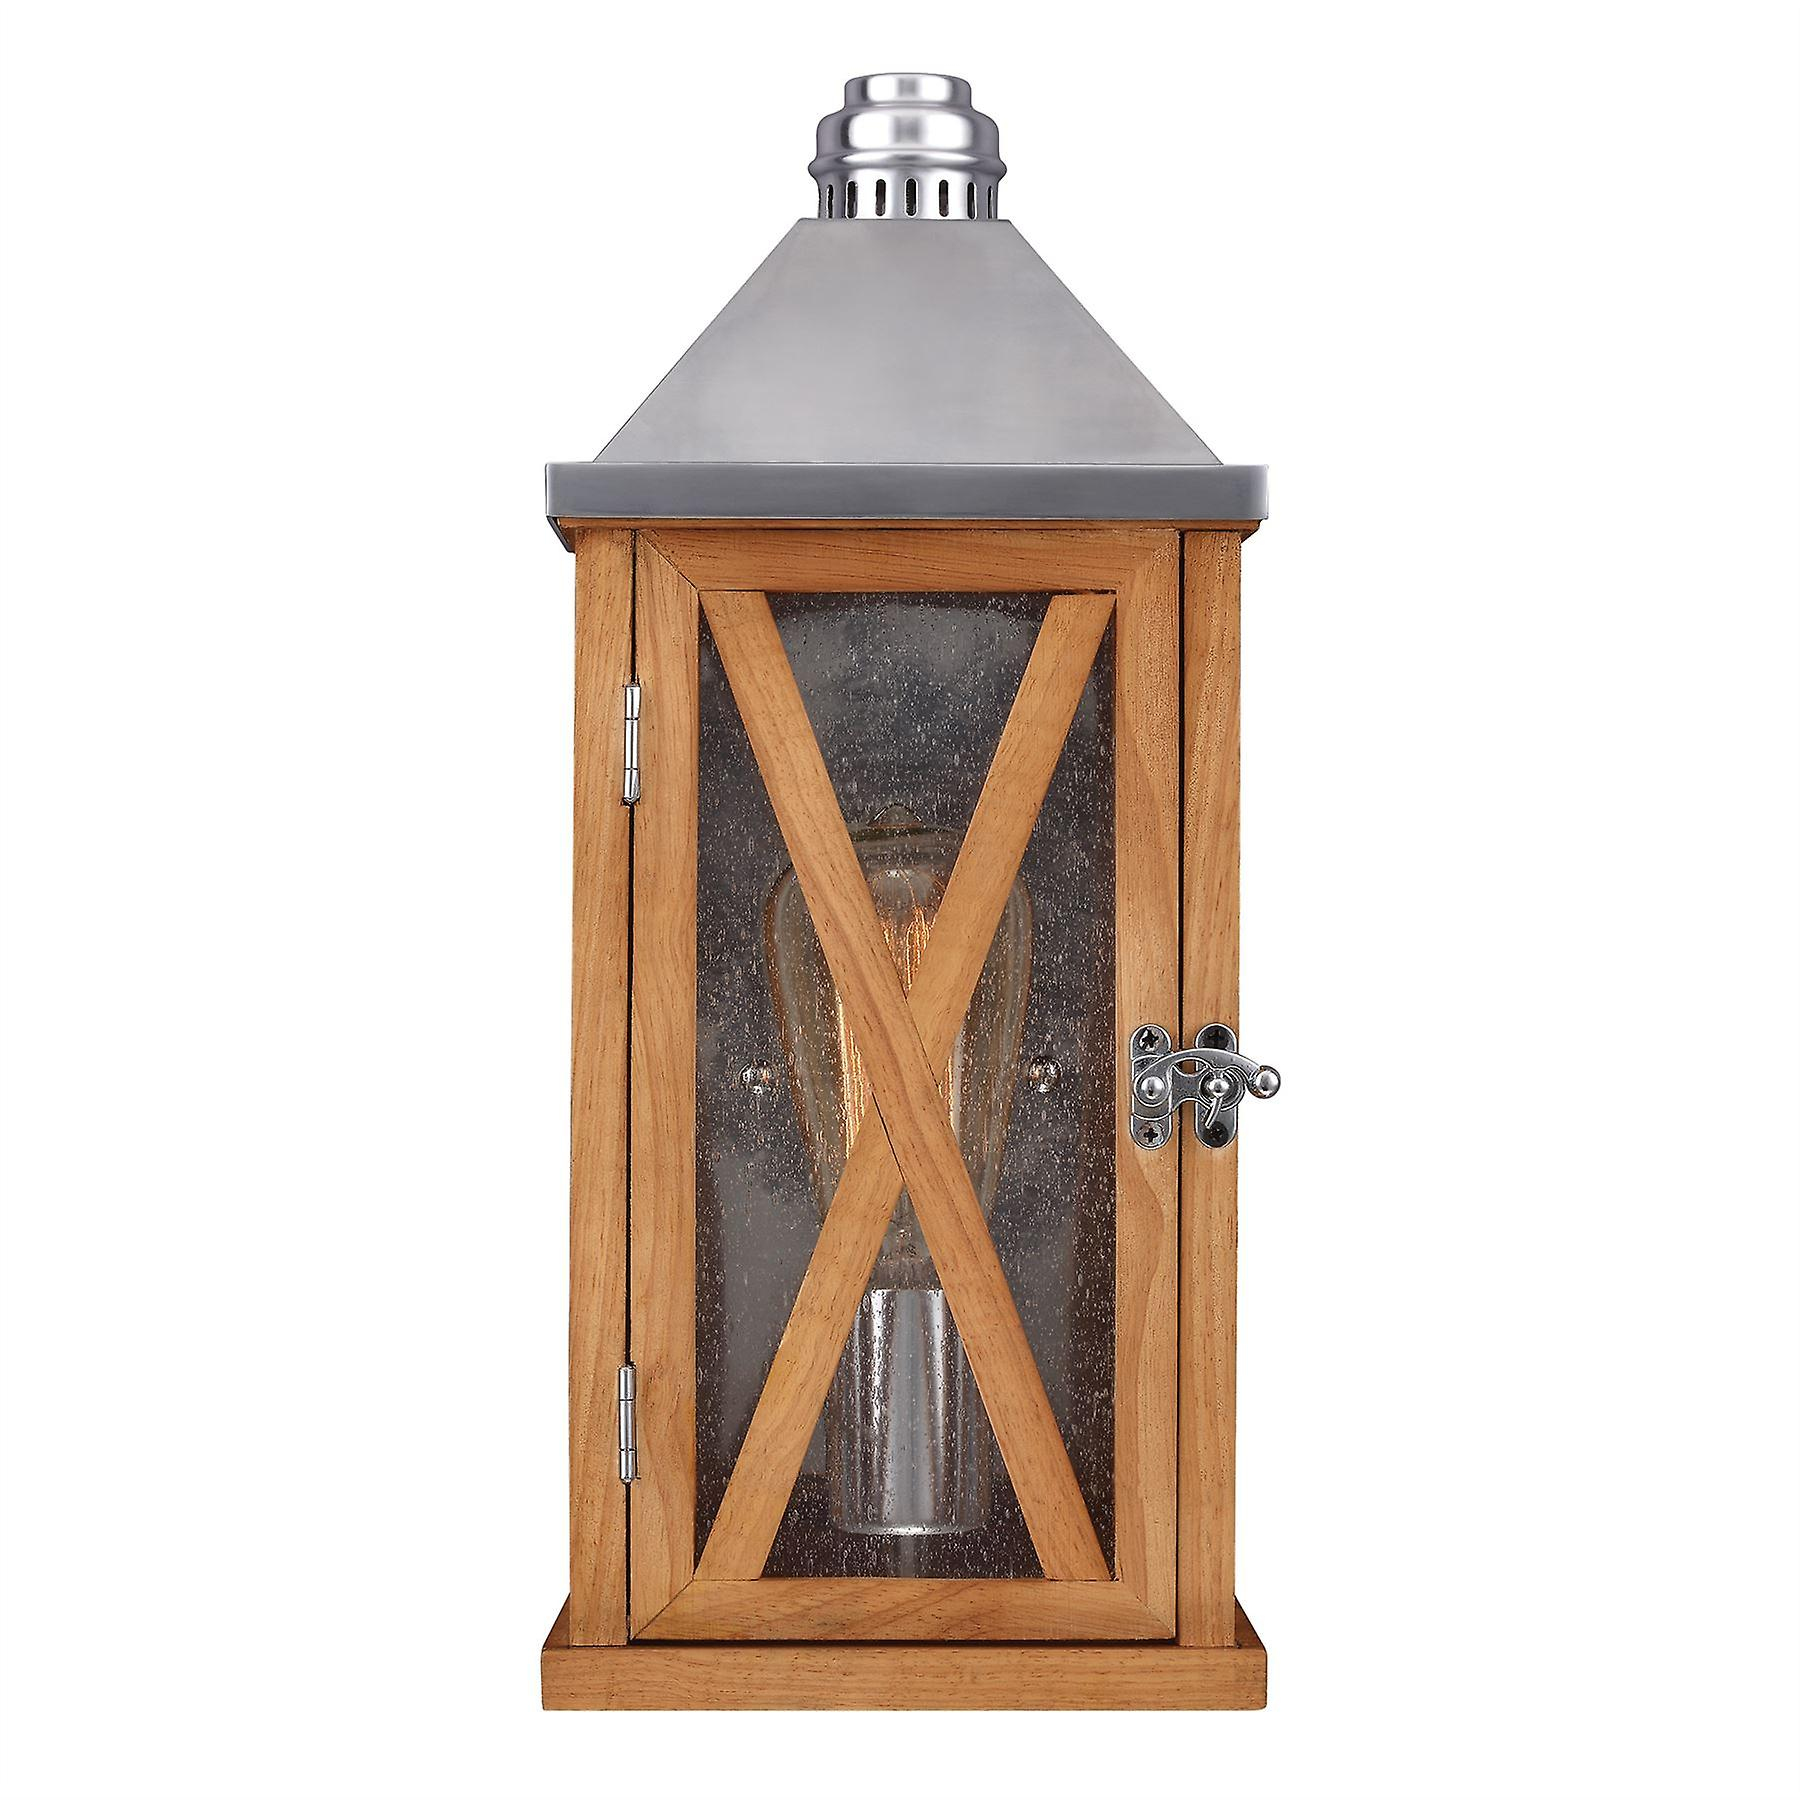 Lumiere Oak Small Outdoor Wall Lantern With Pyramid Roof - Elstead Lighting Fe   Lumiere   FE LUMIERE S2OAK